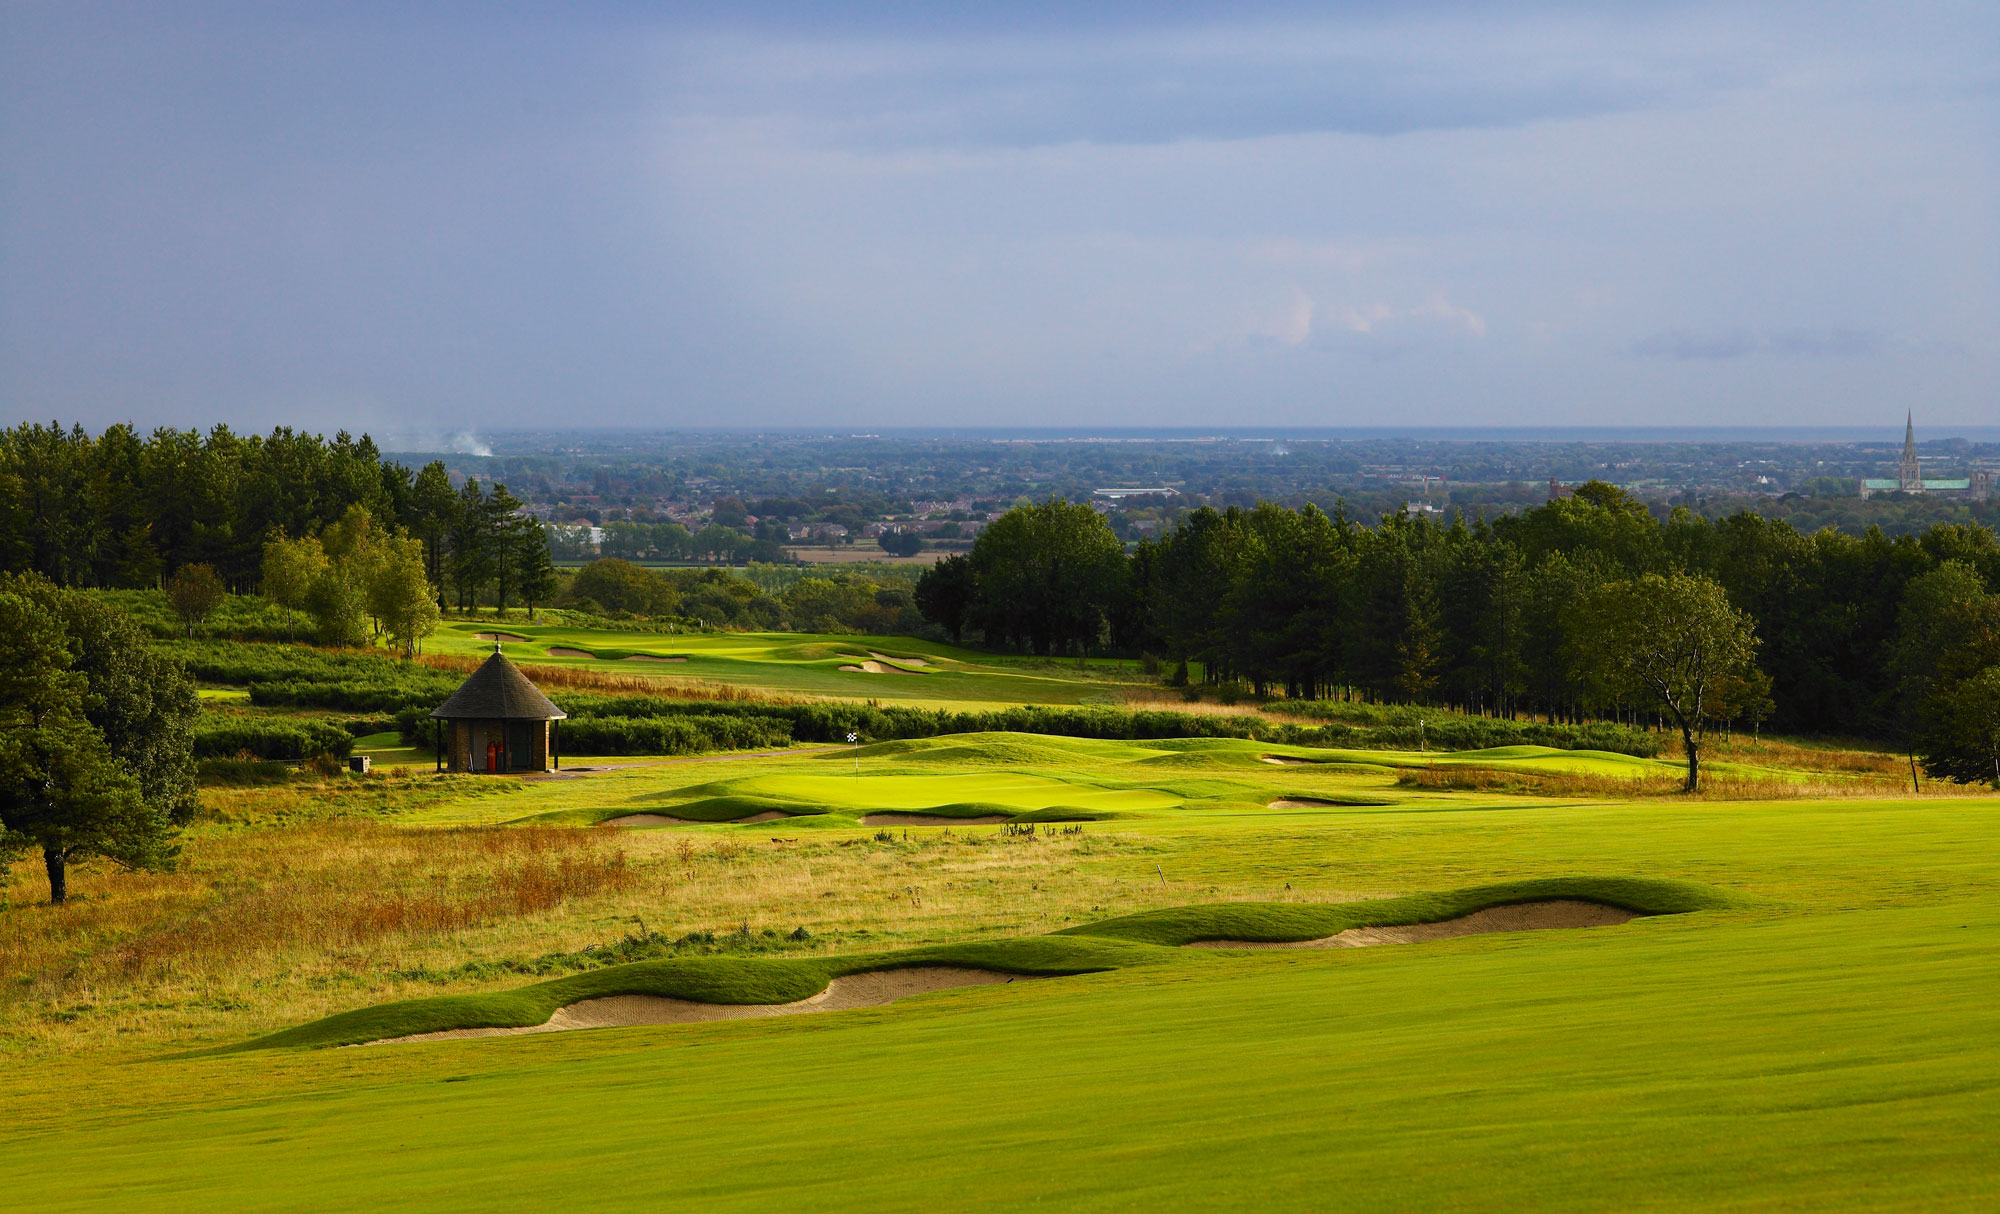 Downs Course 7th Fairway - Golf at Goodwood